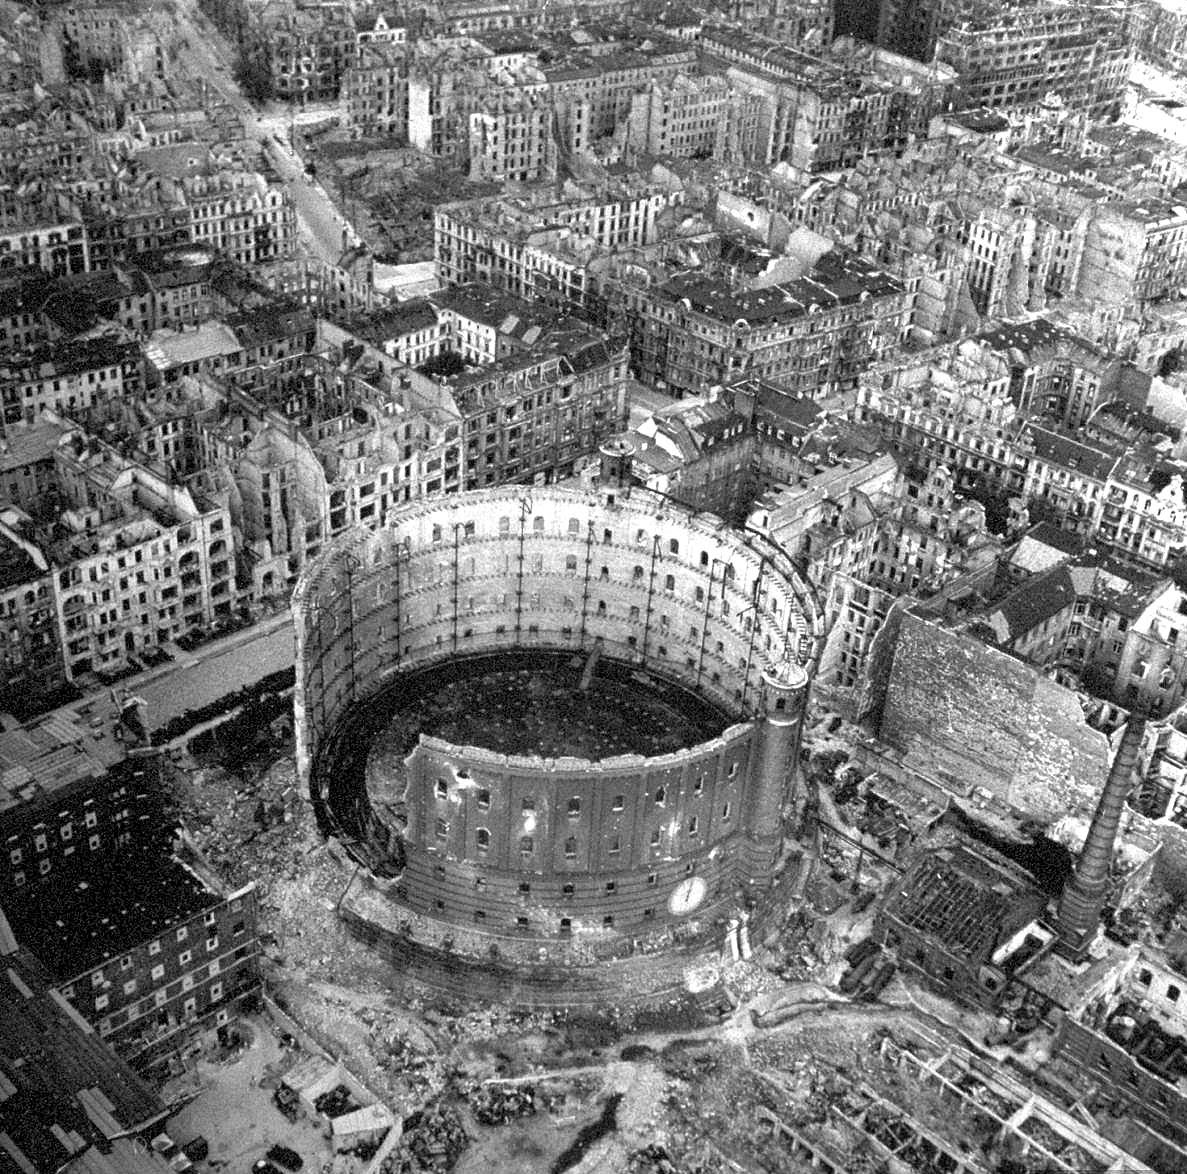 Excellent aerial view showing devastation and bombed out buildings over wide area.